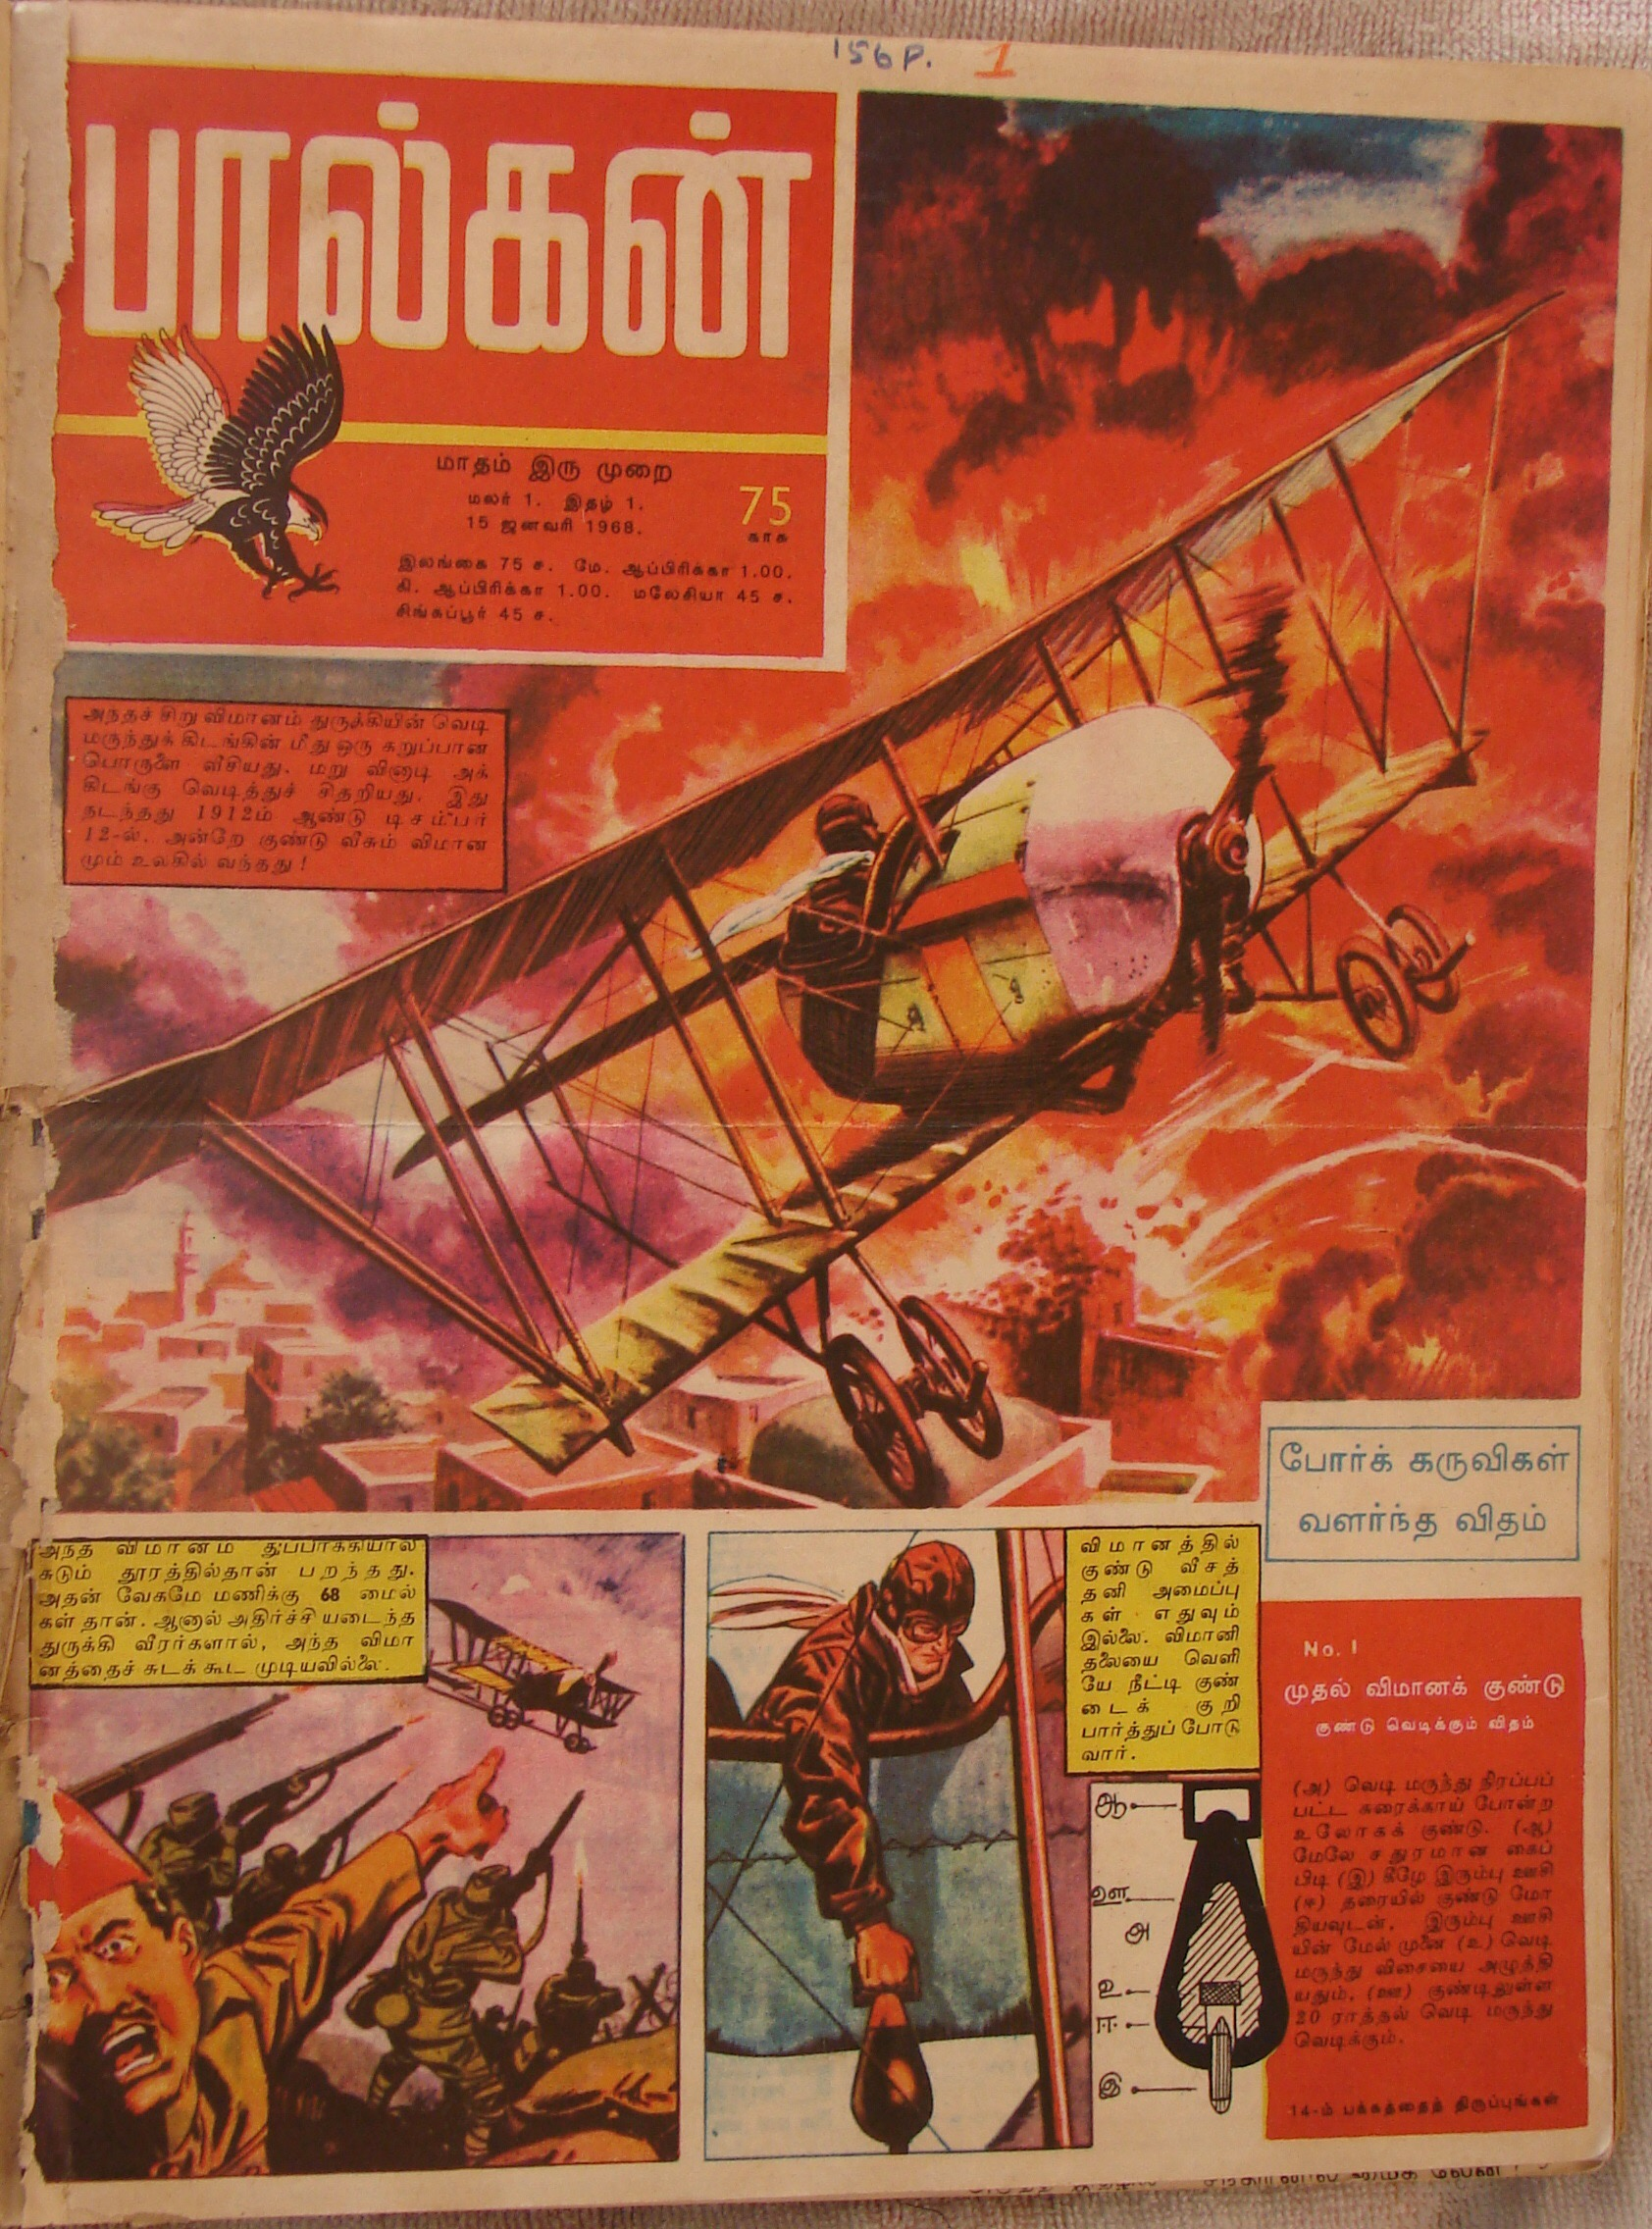 The cover of the first issue of the short-lived Indian version of Eagle - Falcon Issue One